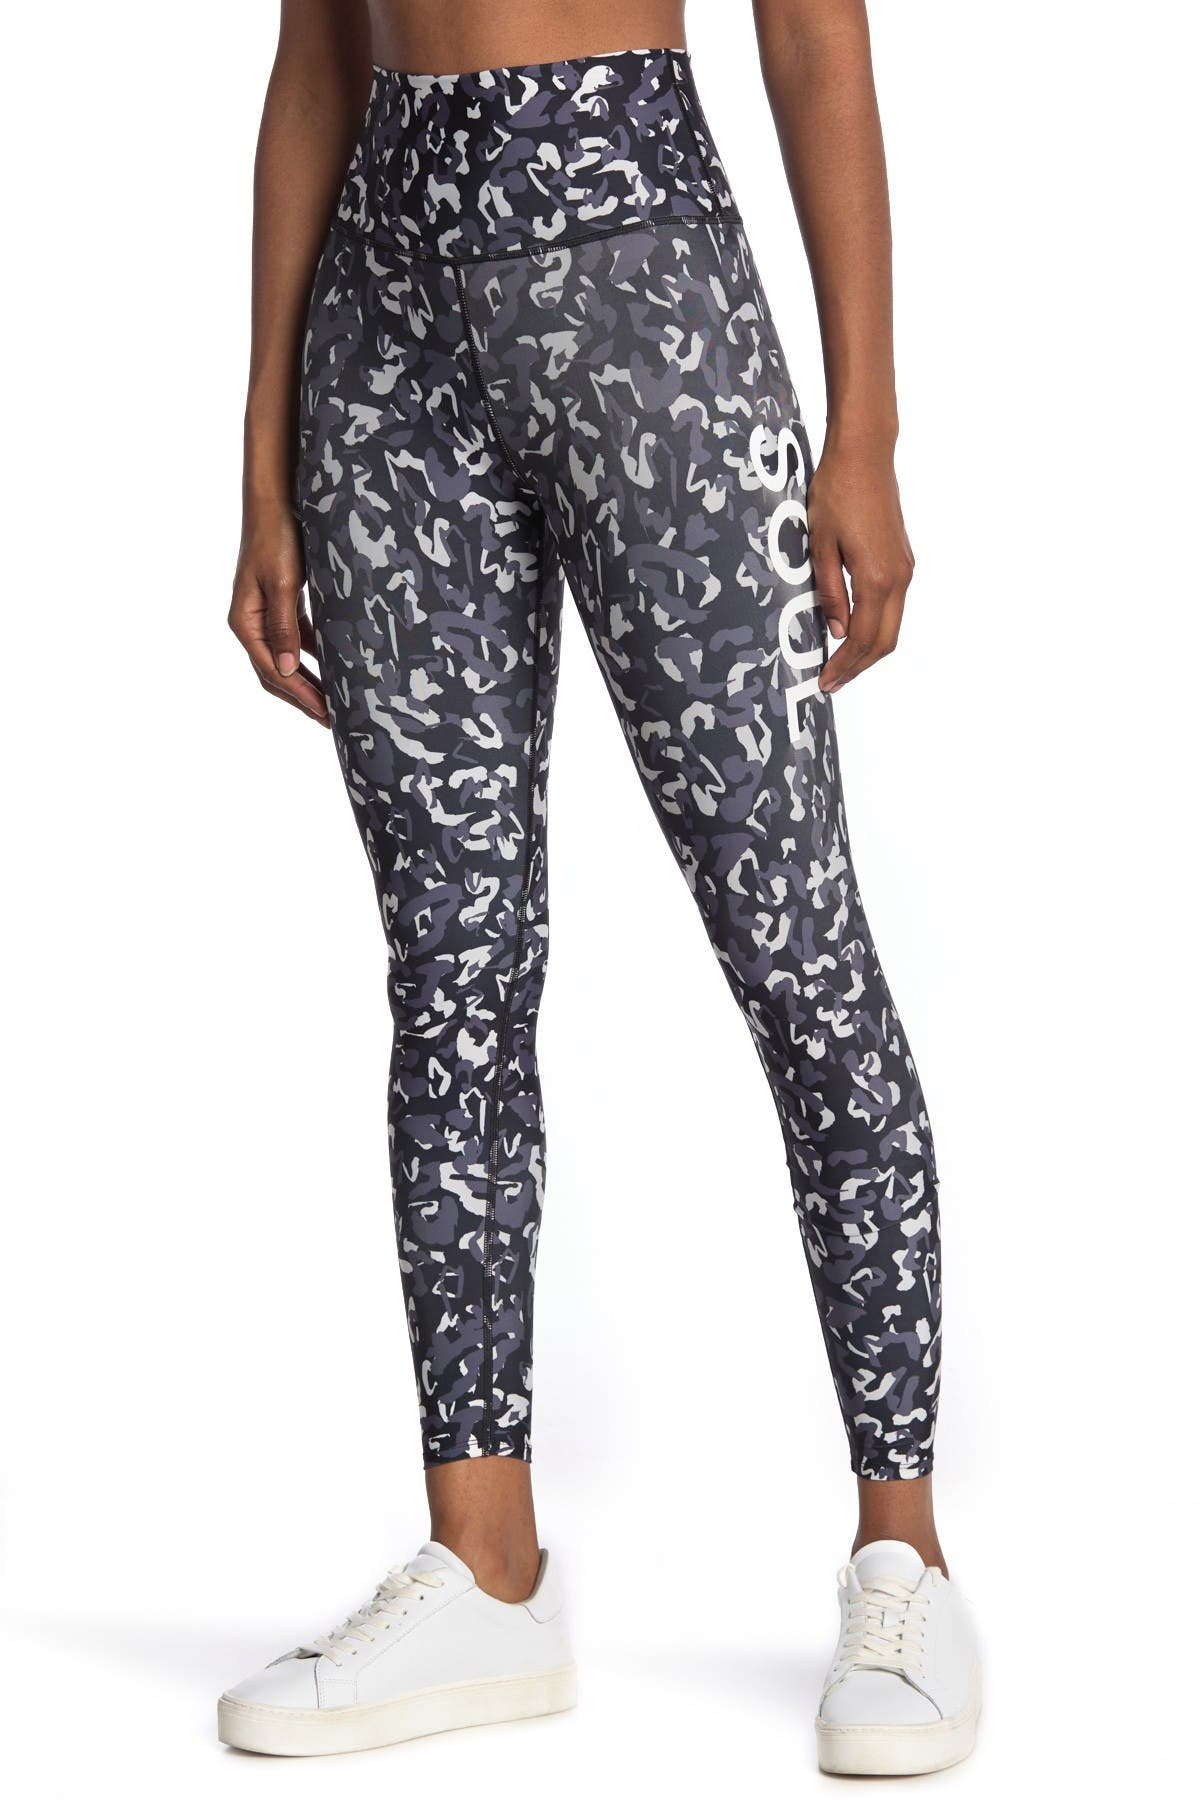 Image of SoulCycle Moving Forward High Waisted Leggings